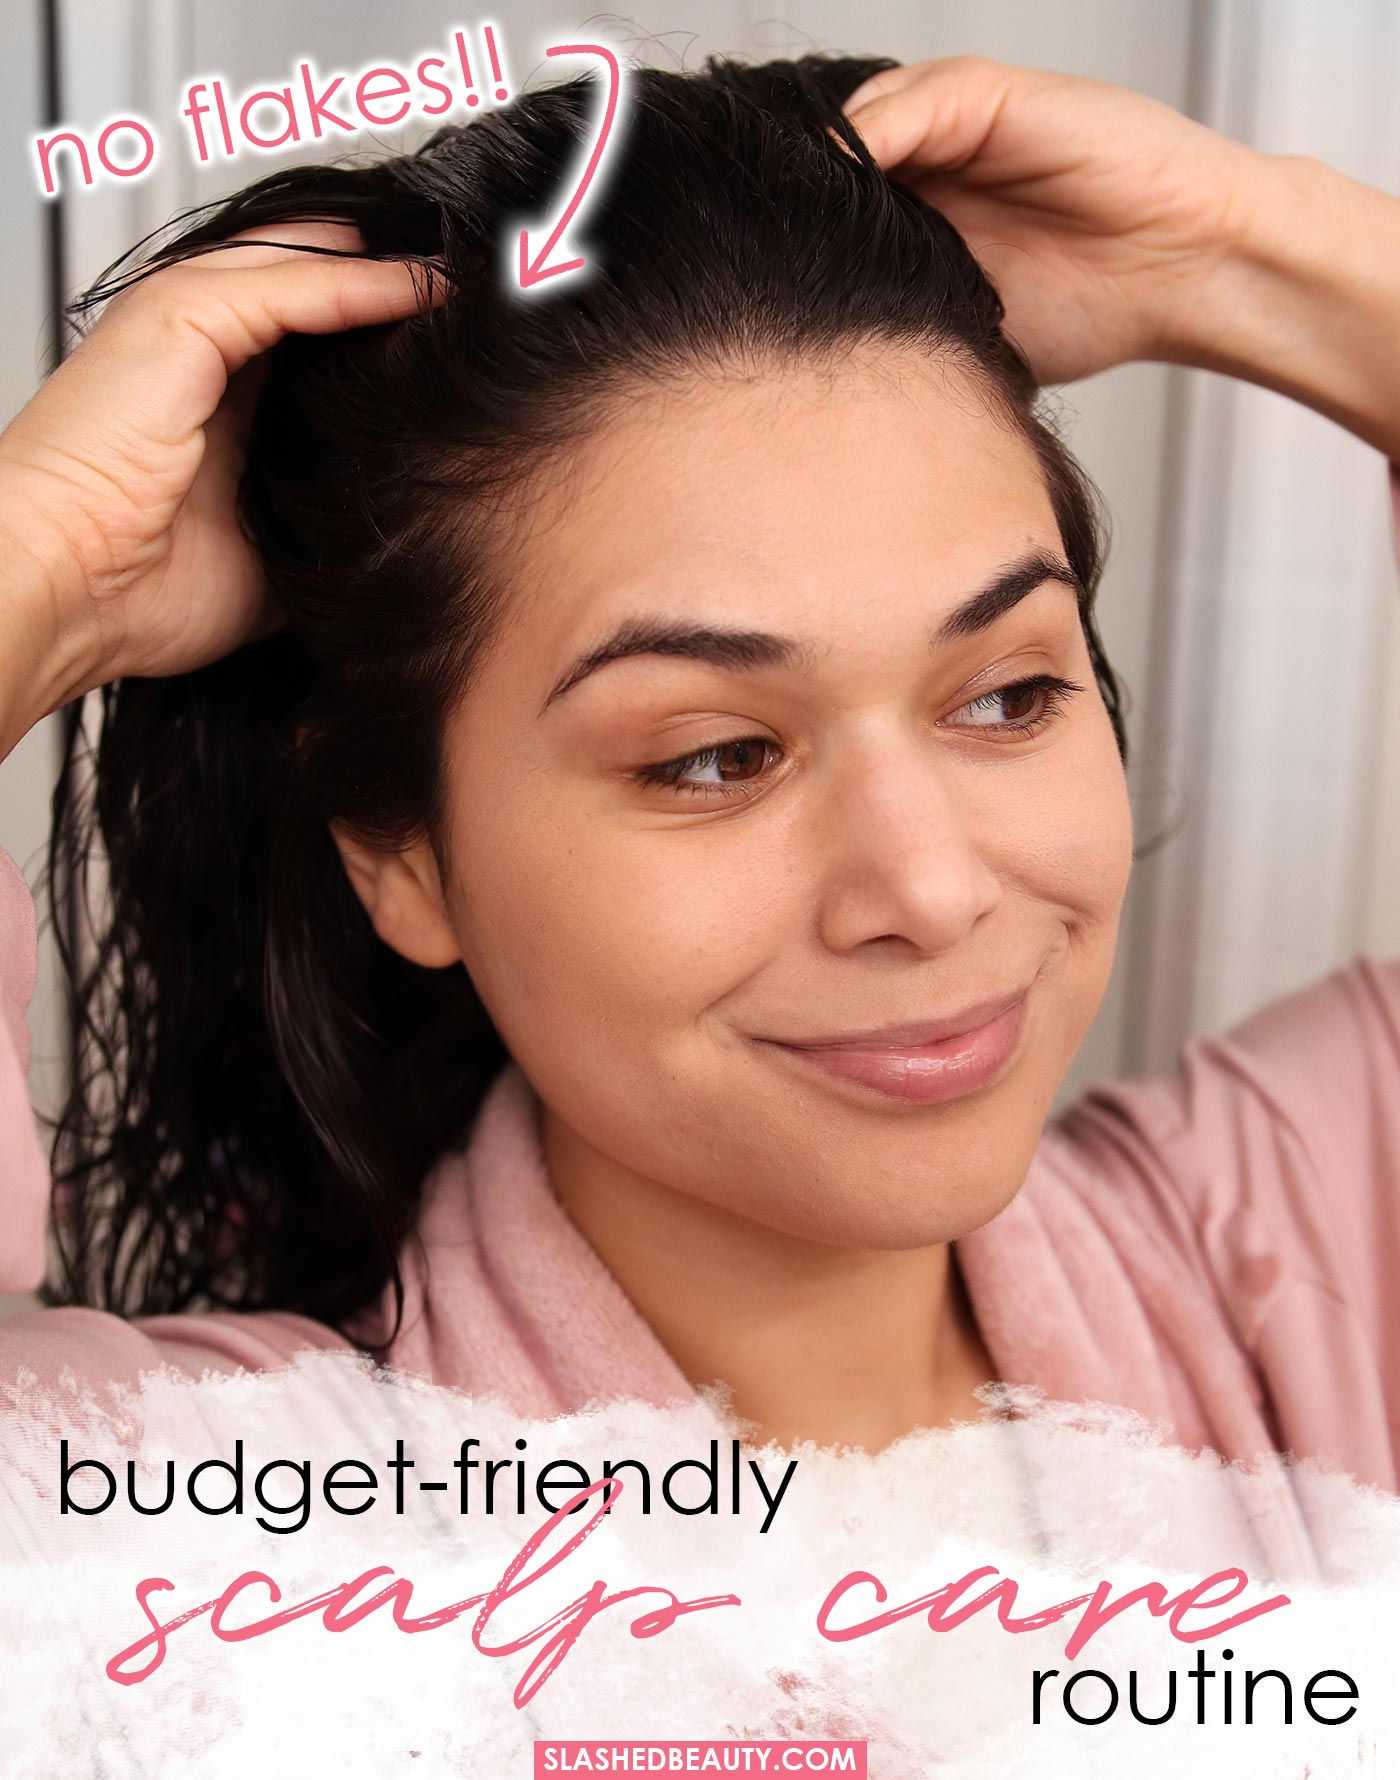 Budget Friendly Scalp Care Routine for Dandruff, Smelly Hair and Dry Scalp | Slashed Beauty